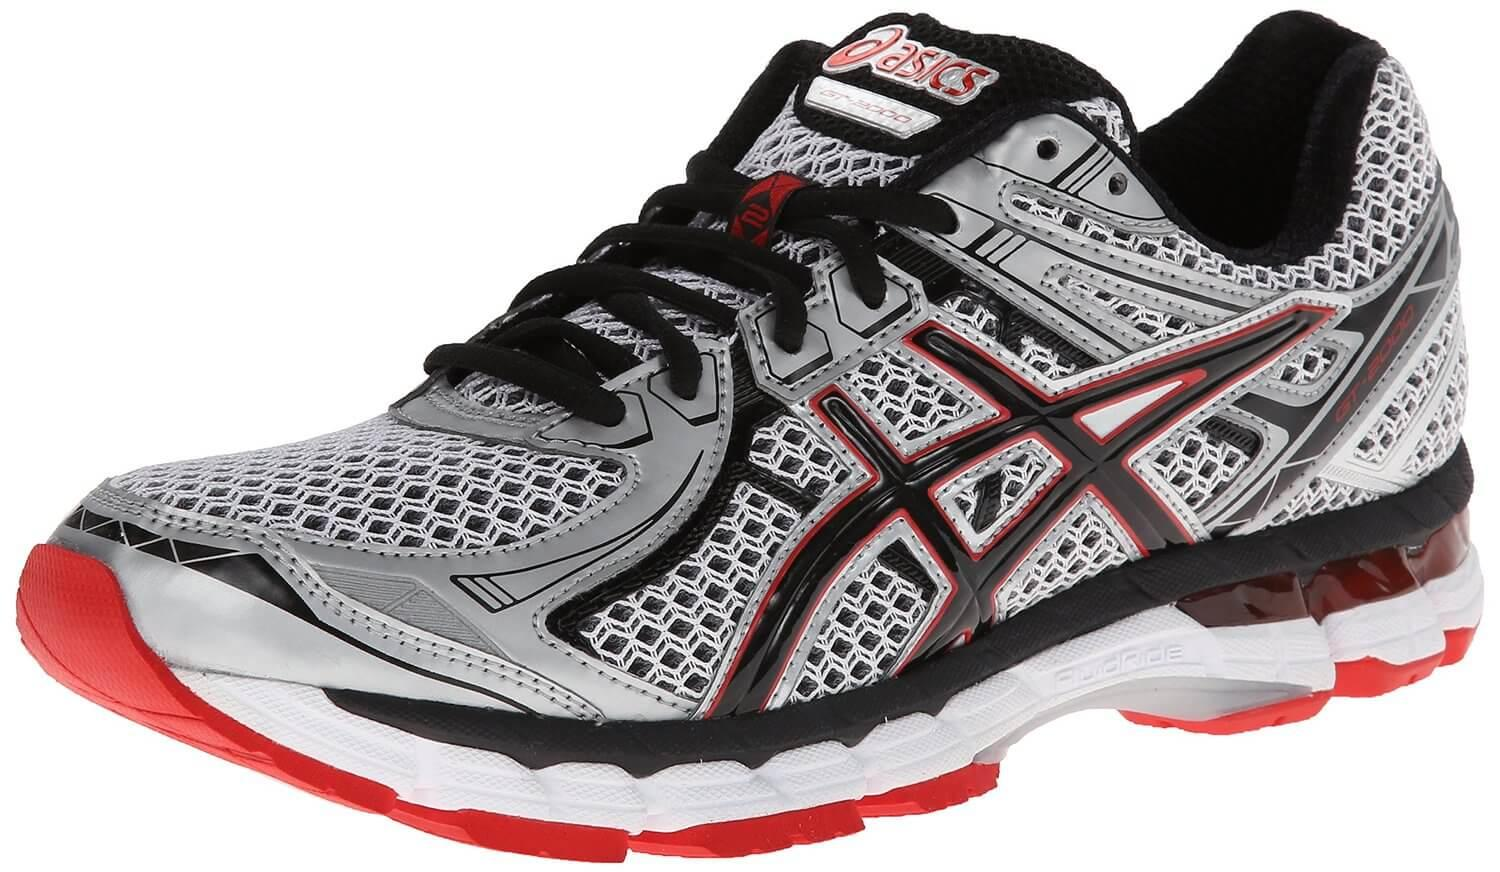 Asics Gt 2000 2   Buy Discount Shoes from Asics and Converse ... b7320b519706a